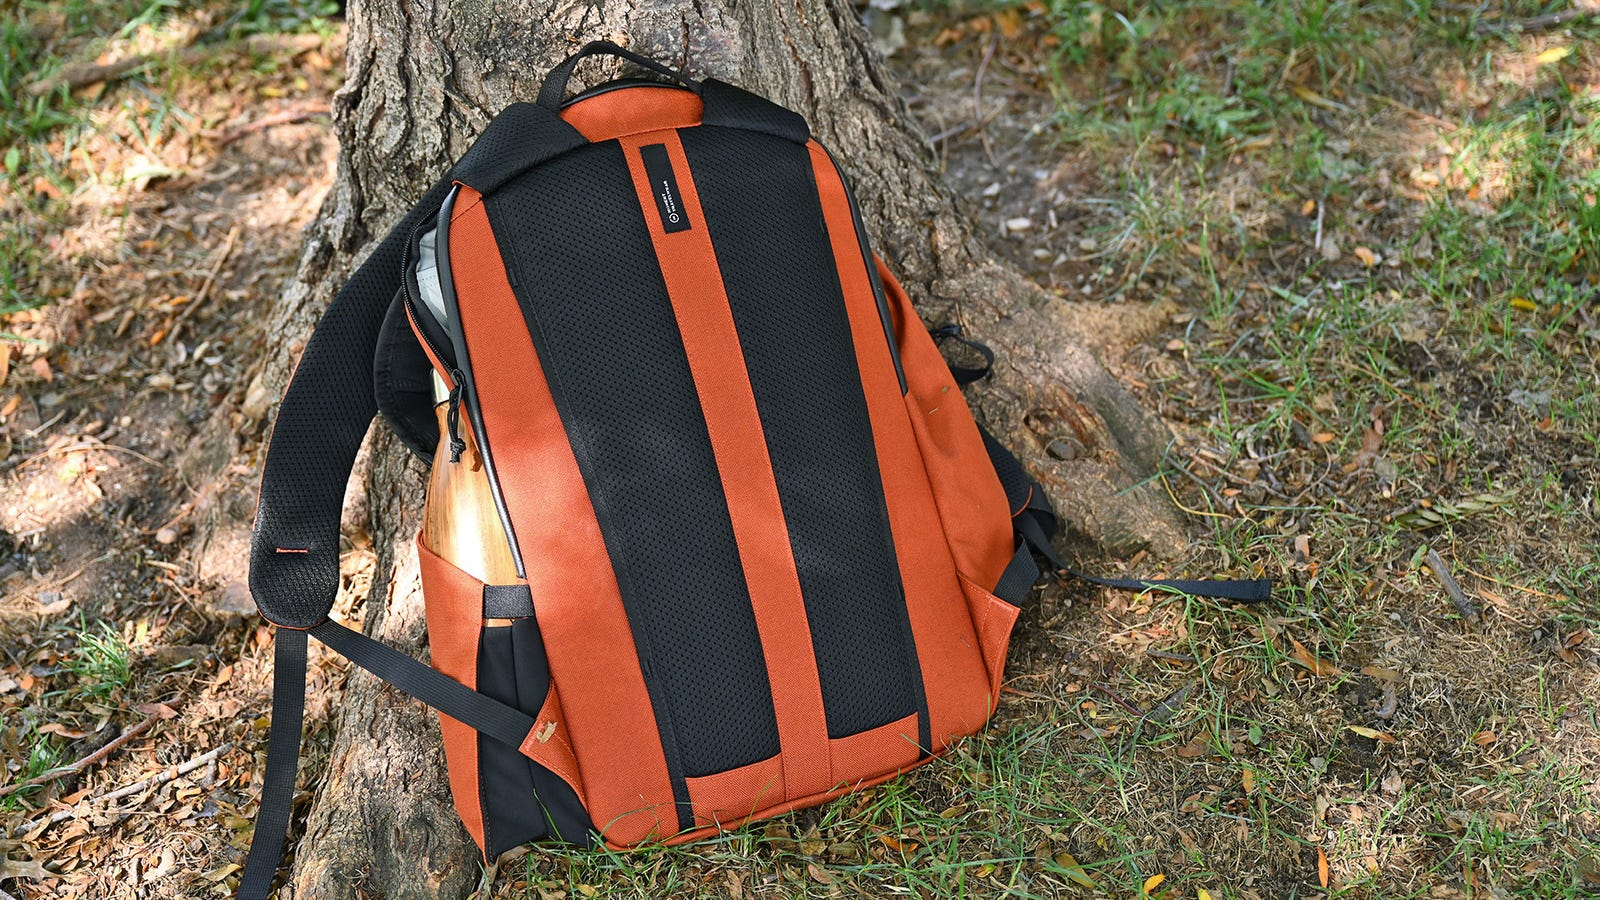 The back of the MTW Backpack features padded mesh for comfort and a pass-through slip for sliding over the handle of rolling luggage. Also, if orange isn't your thing, the backpack is available in olive and black too.